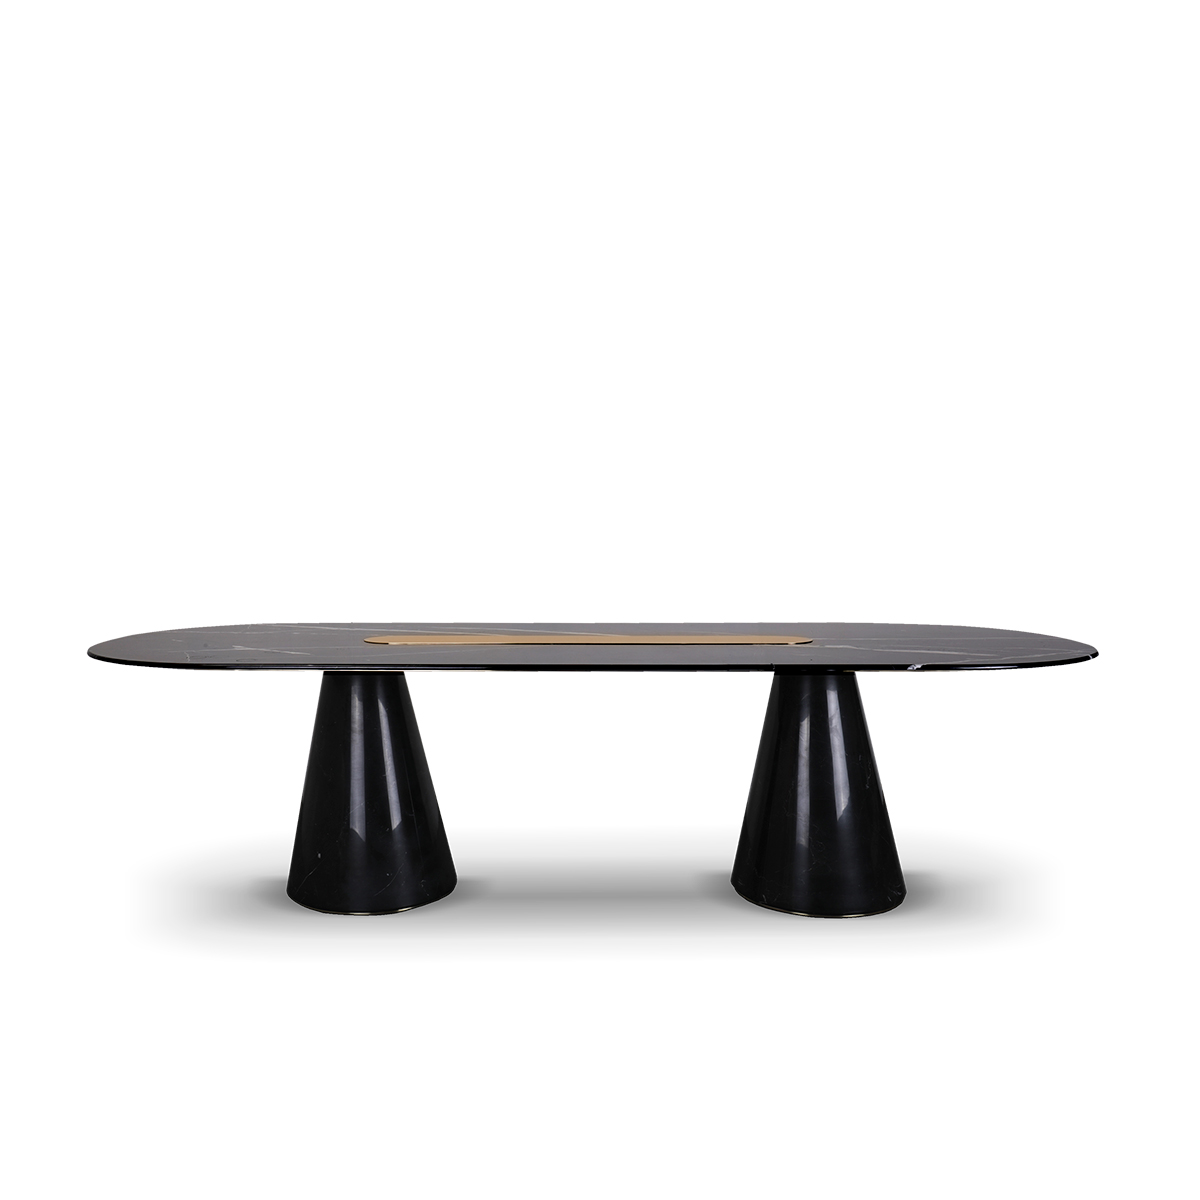 BERTOIA BIG DINING TABLE